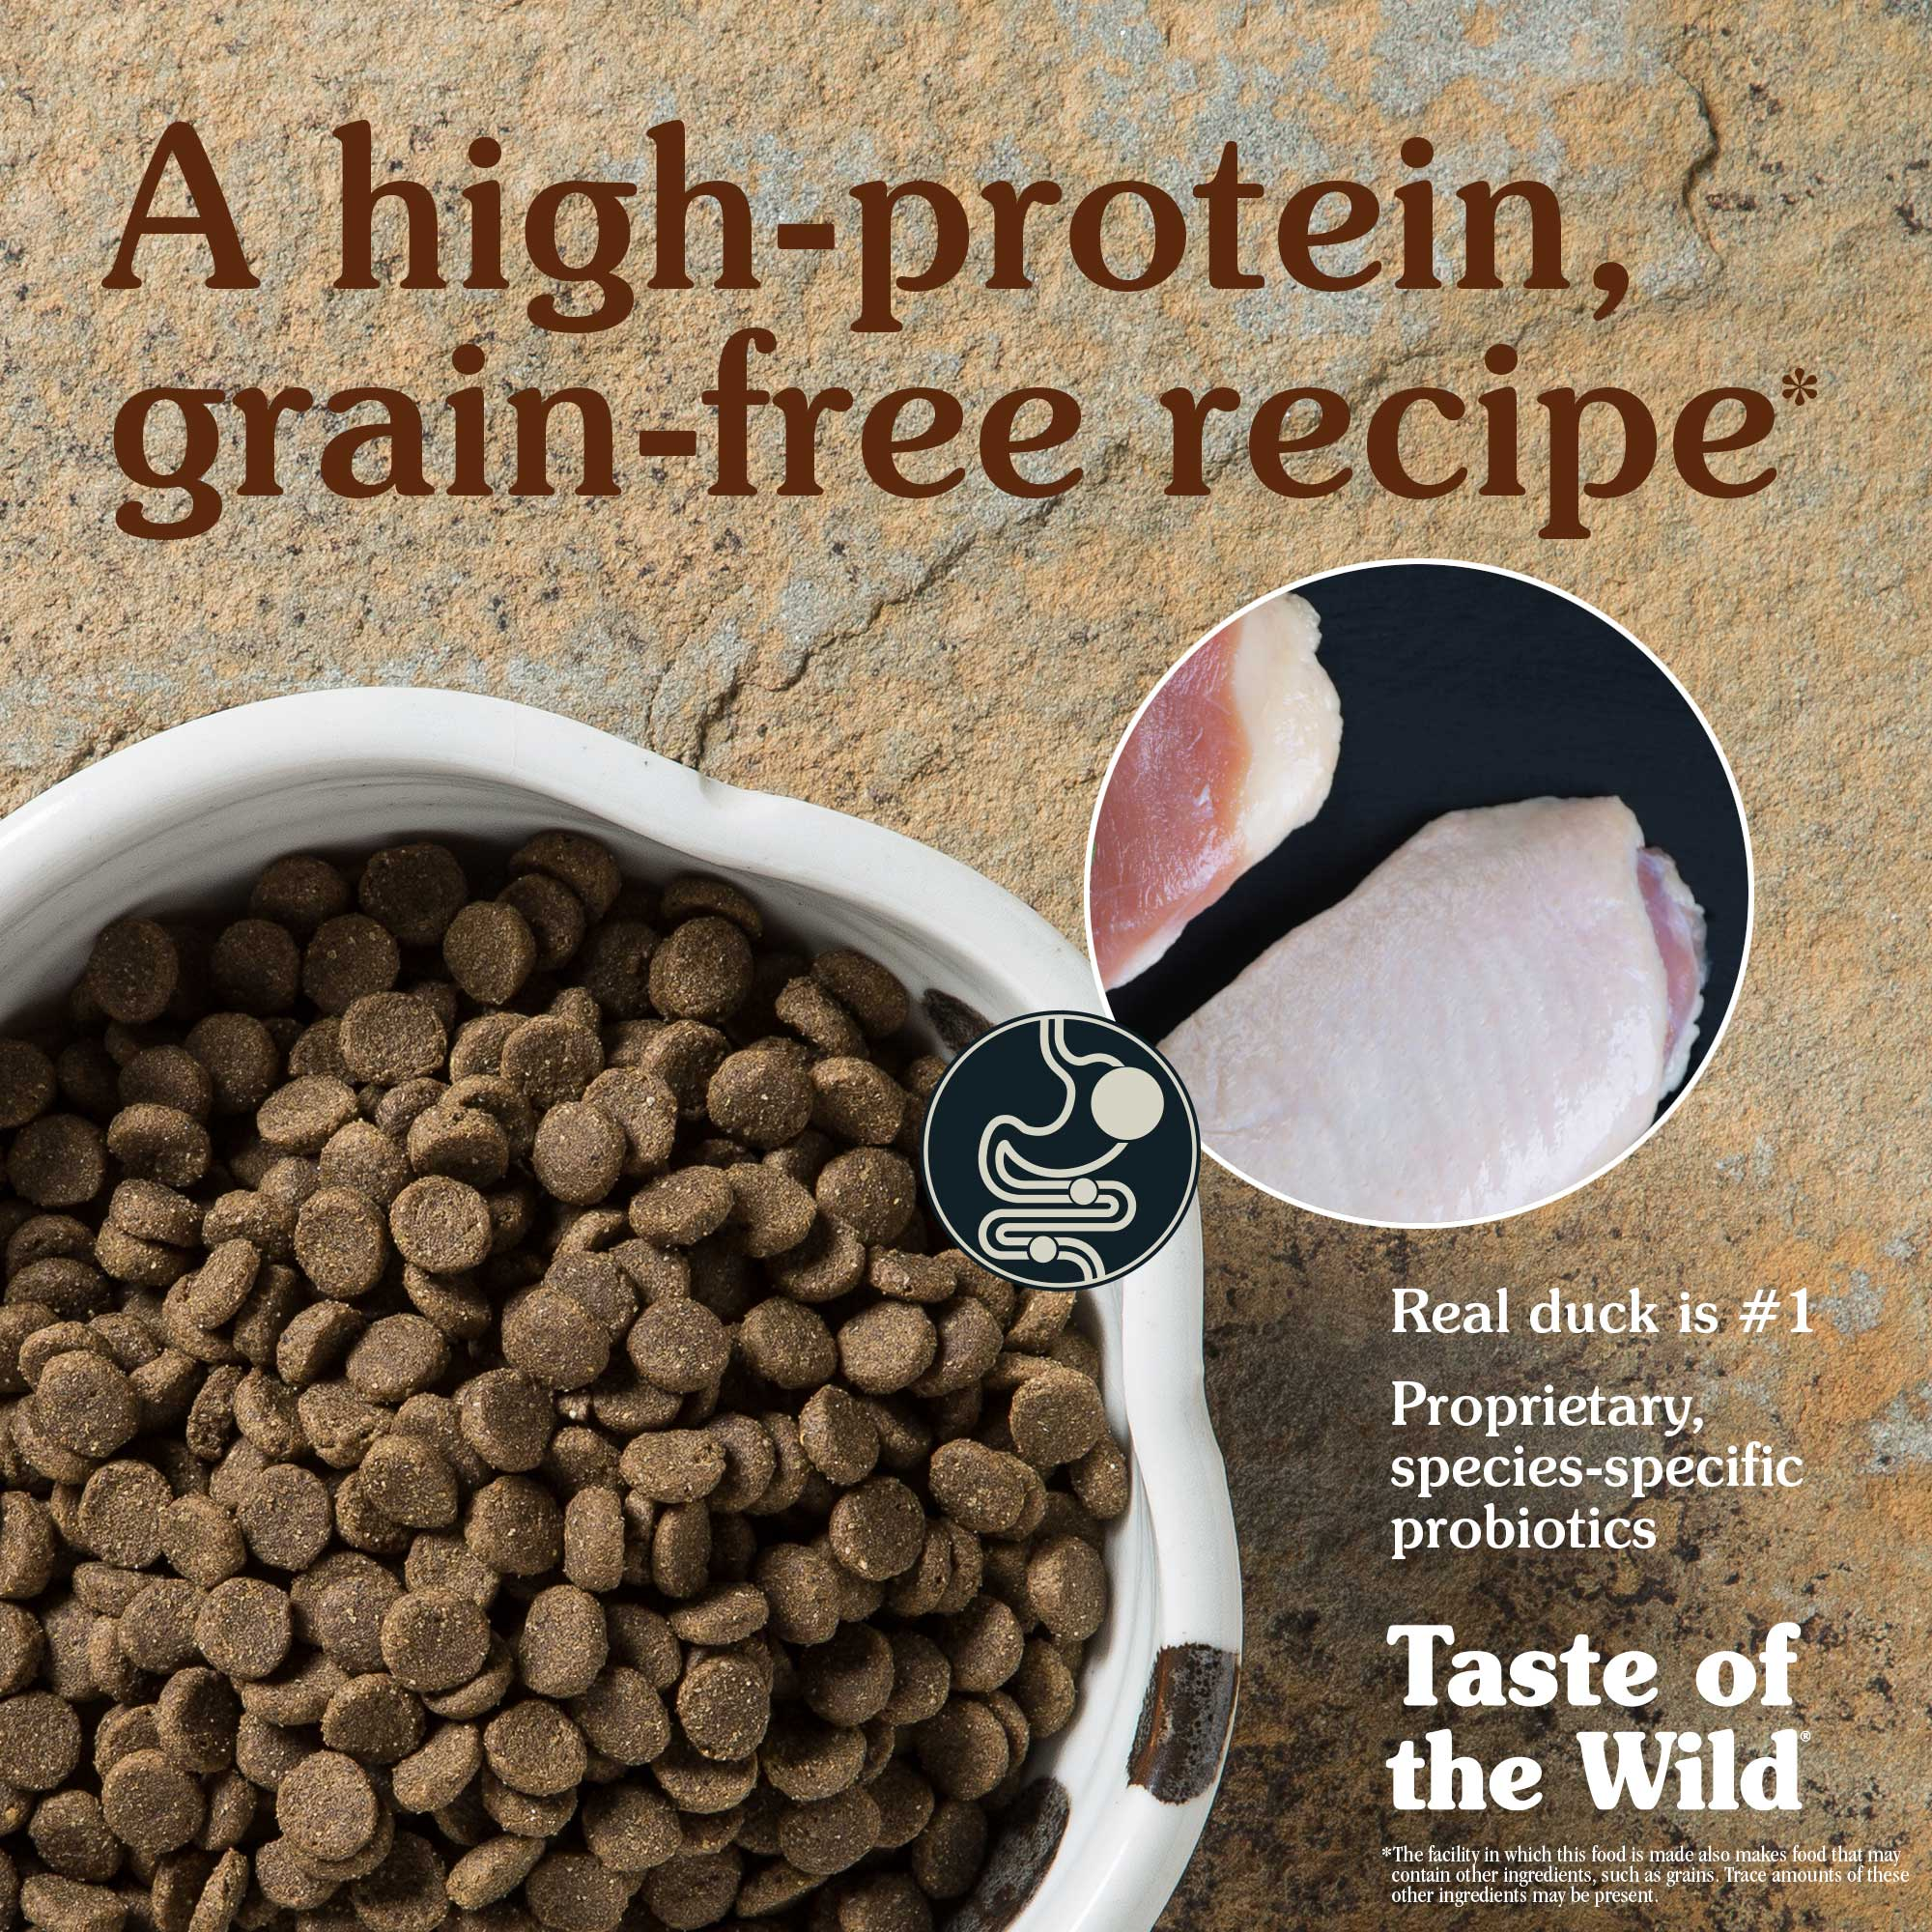 A high-protein, grain-free recipe. Real duck is #1.